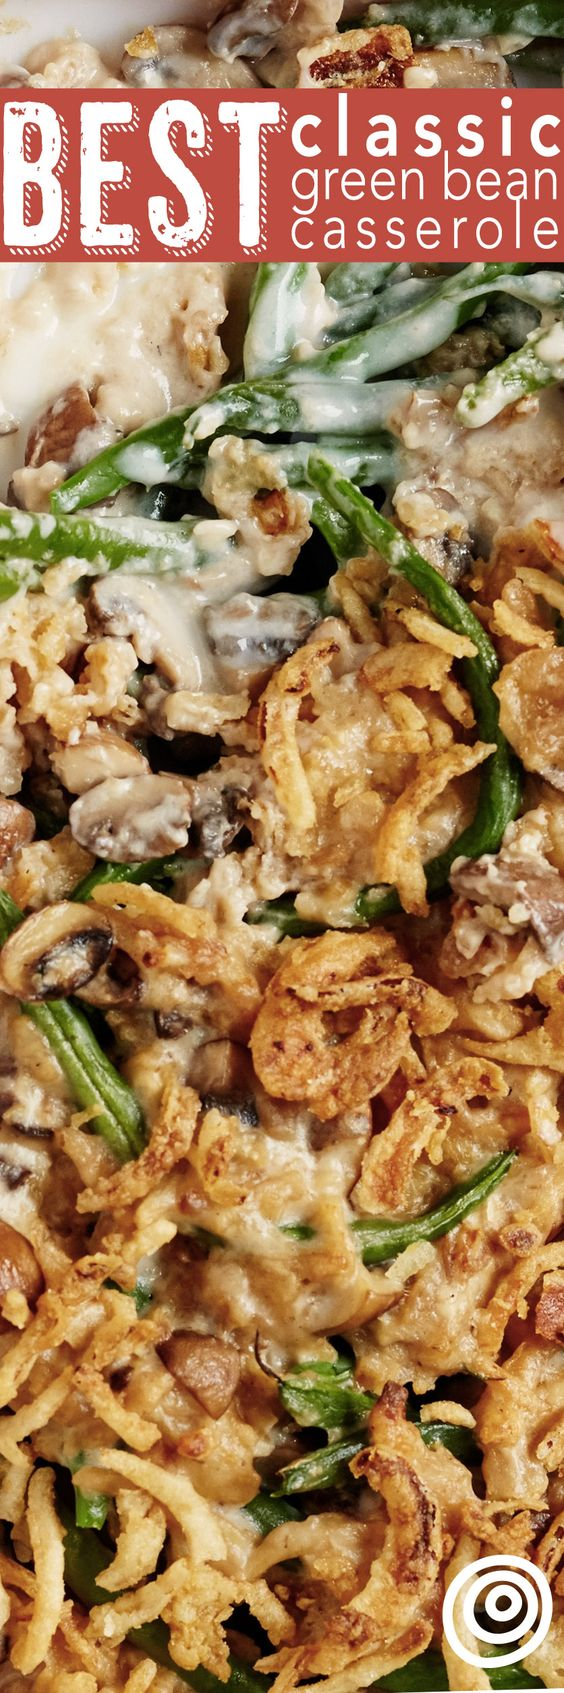 How to make classic green bean casserole recipe for Easy thanksgiving green bean recipes